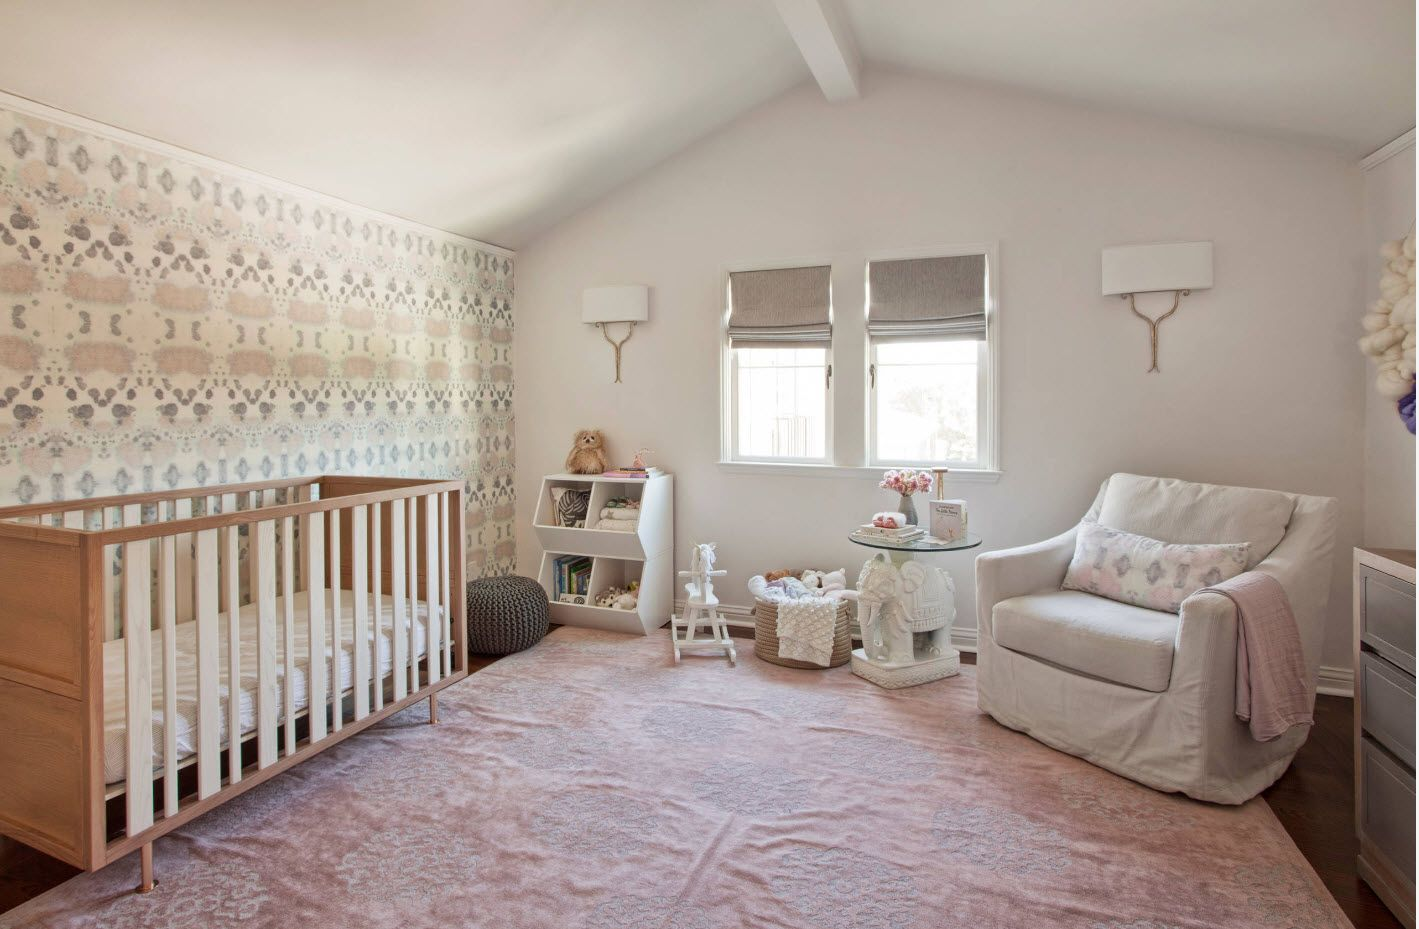 Loft atmosphere of the white pastel color palette of the homey child's room